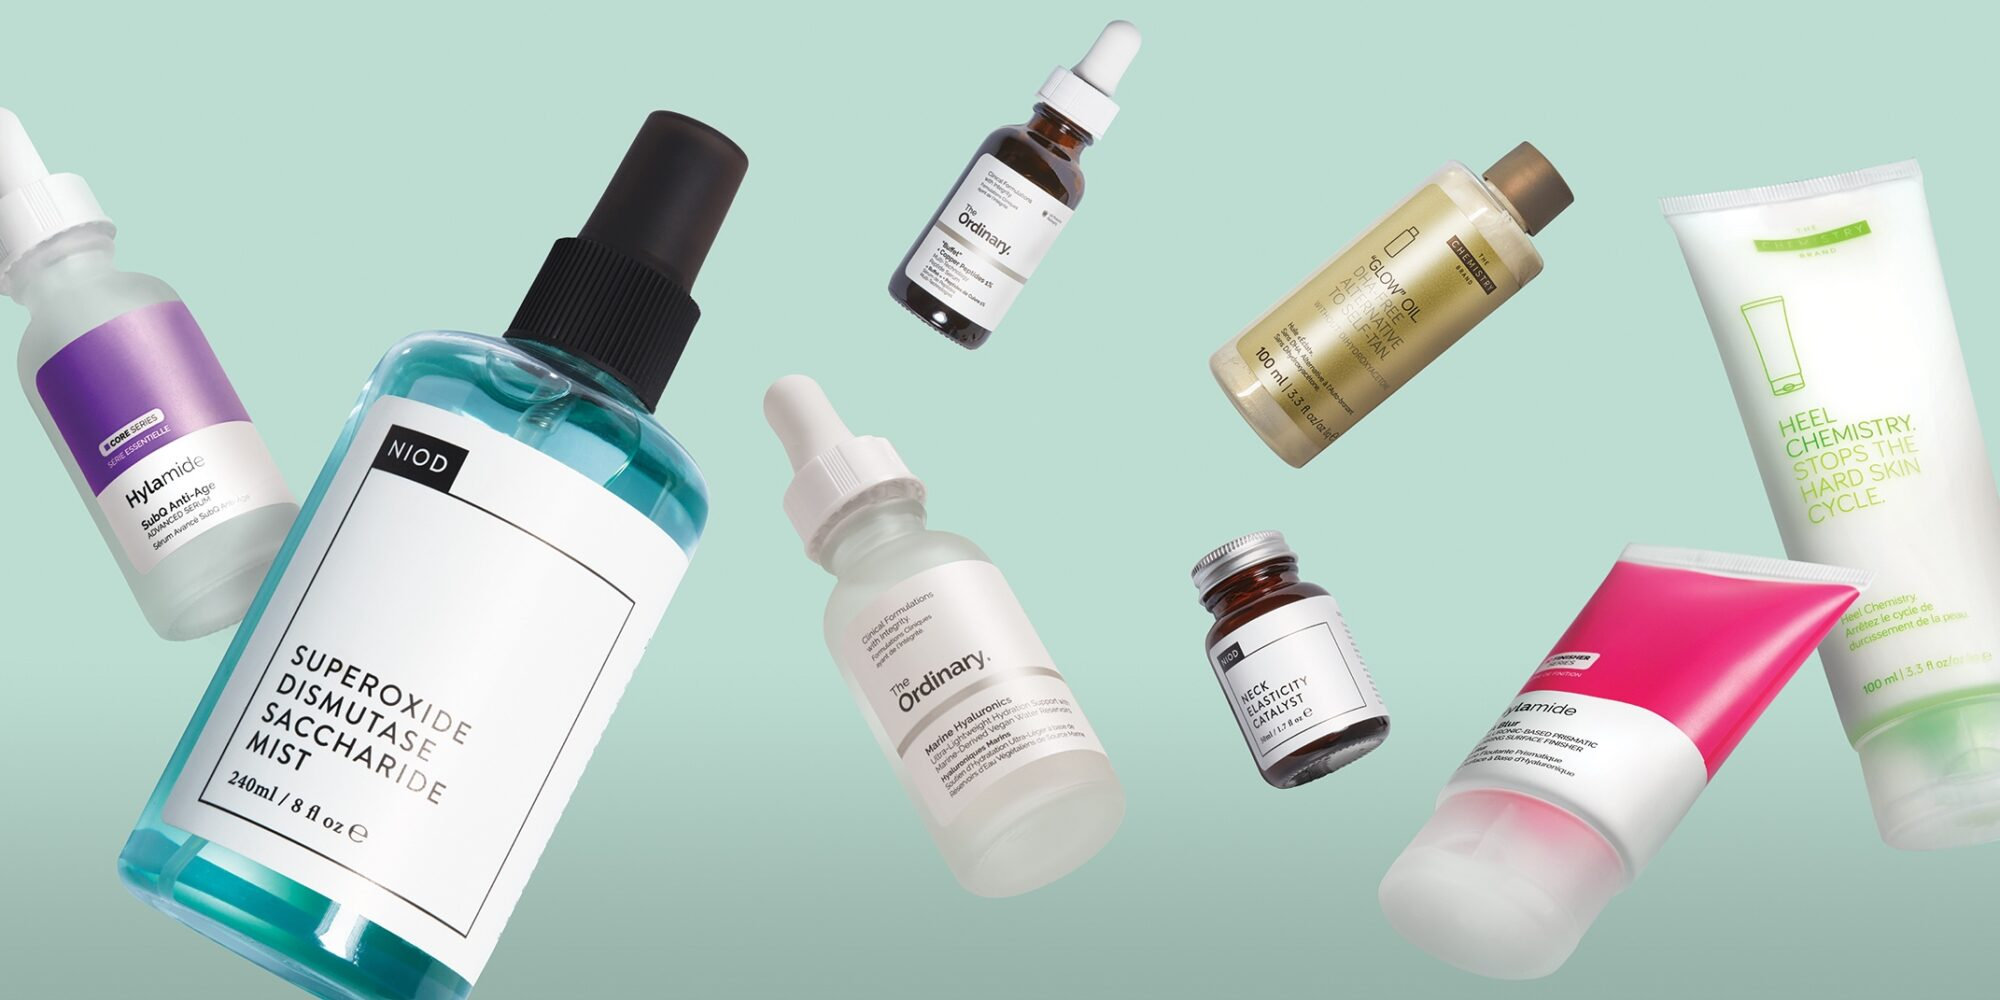 A Study By Deciem And Spate Discovers Concerns About Cosmetic Ingredient Safety Are Showing Up In Google Searches